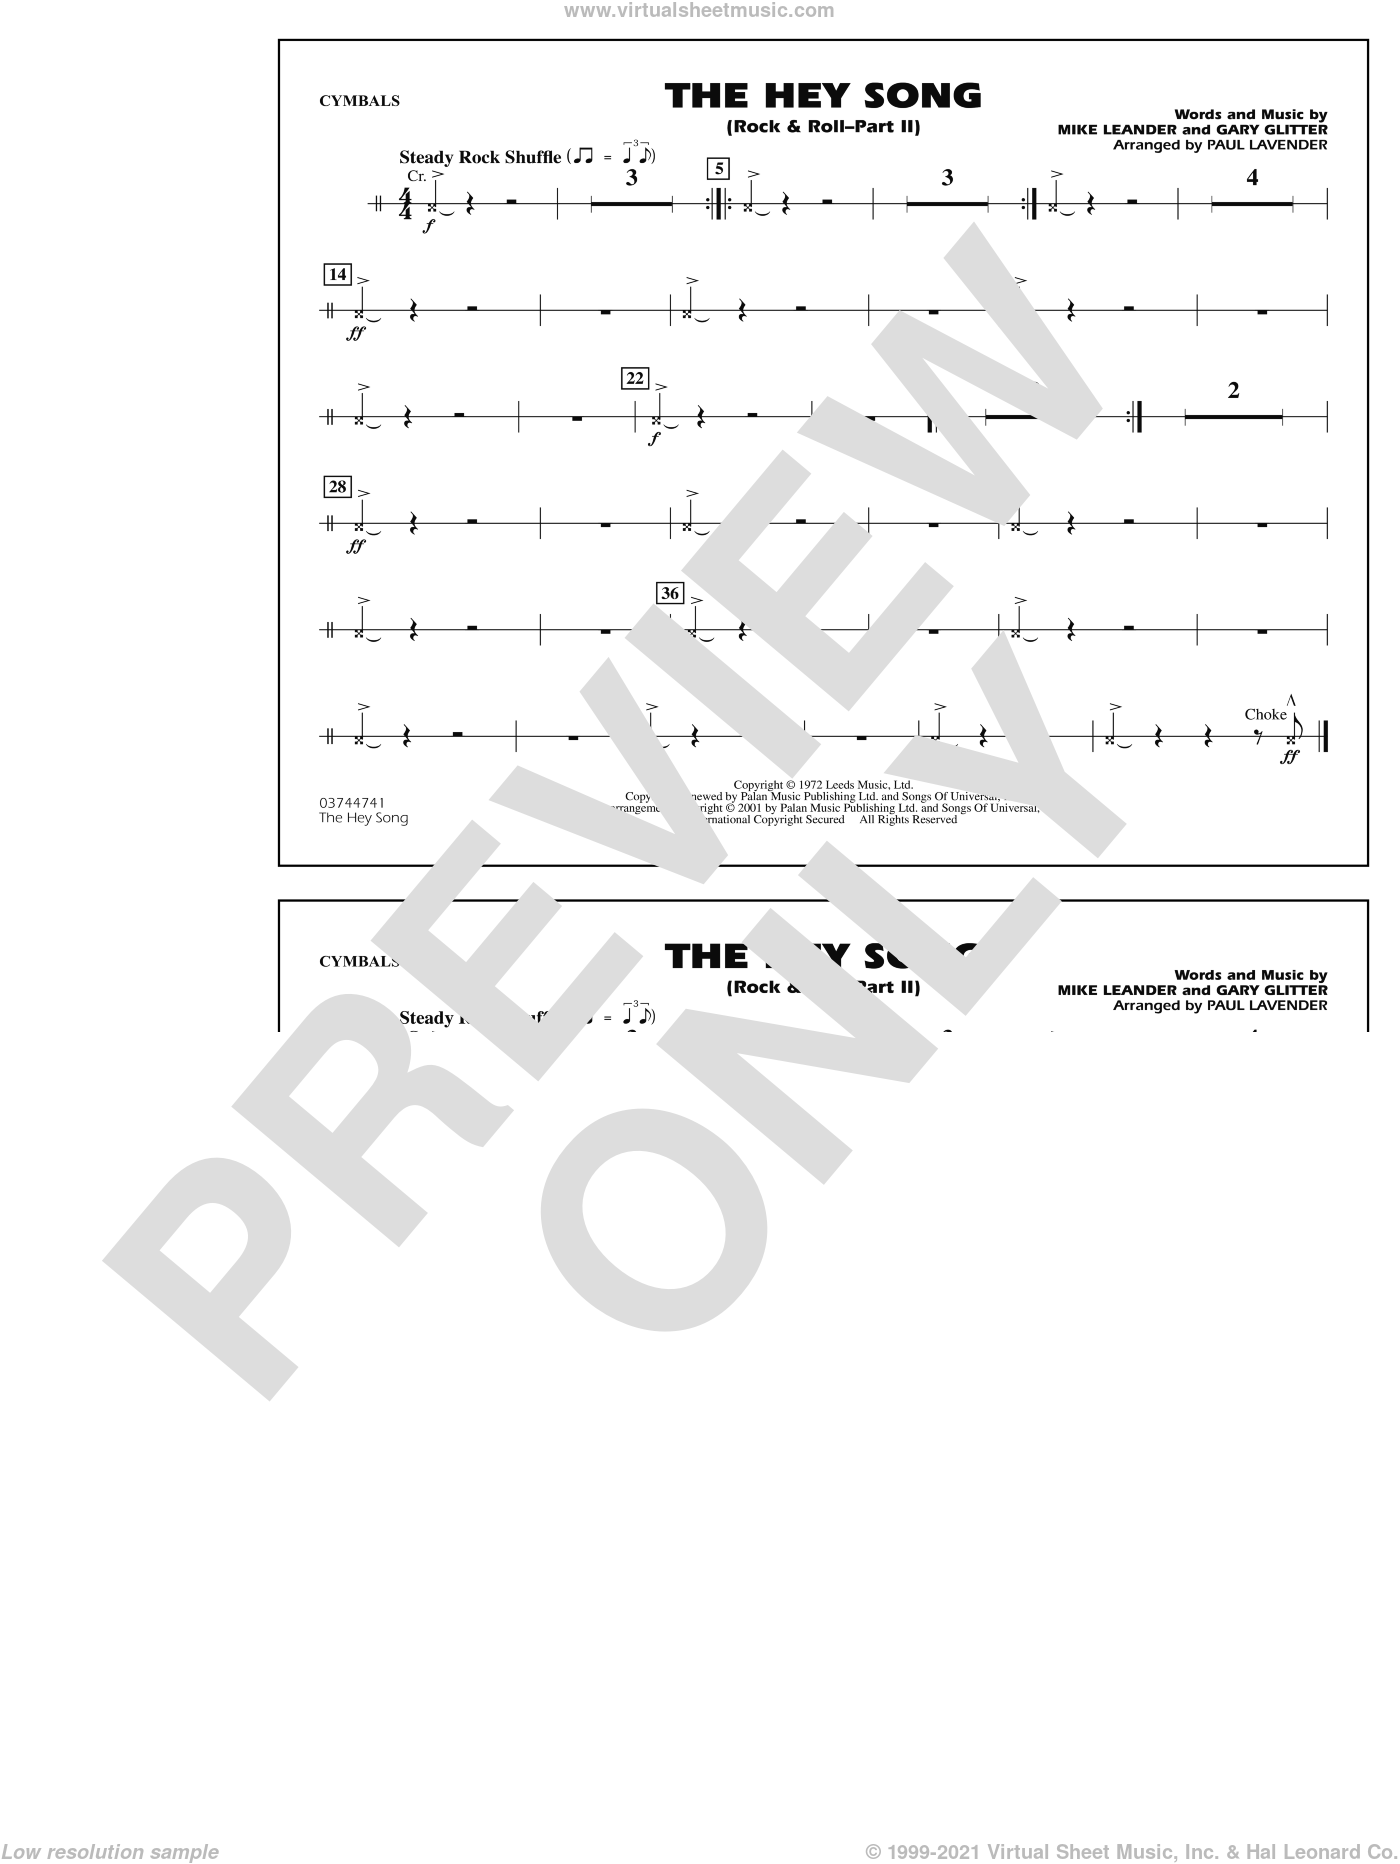 Rock and Roll, part ii (the hey song) sheet music for marching band (cymbals) by Mike Leander